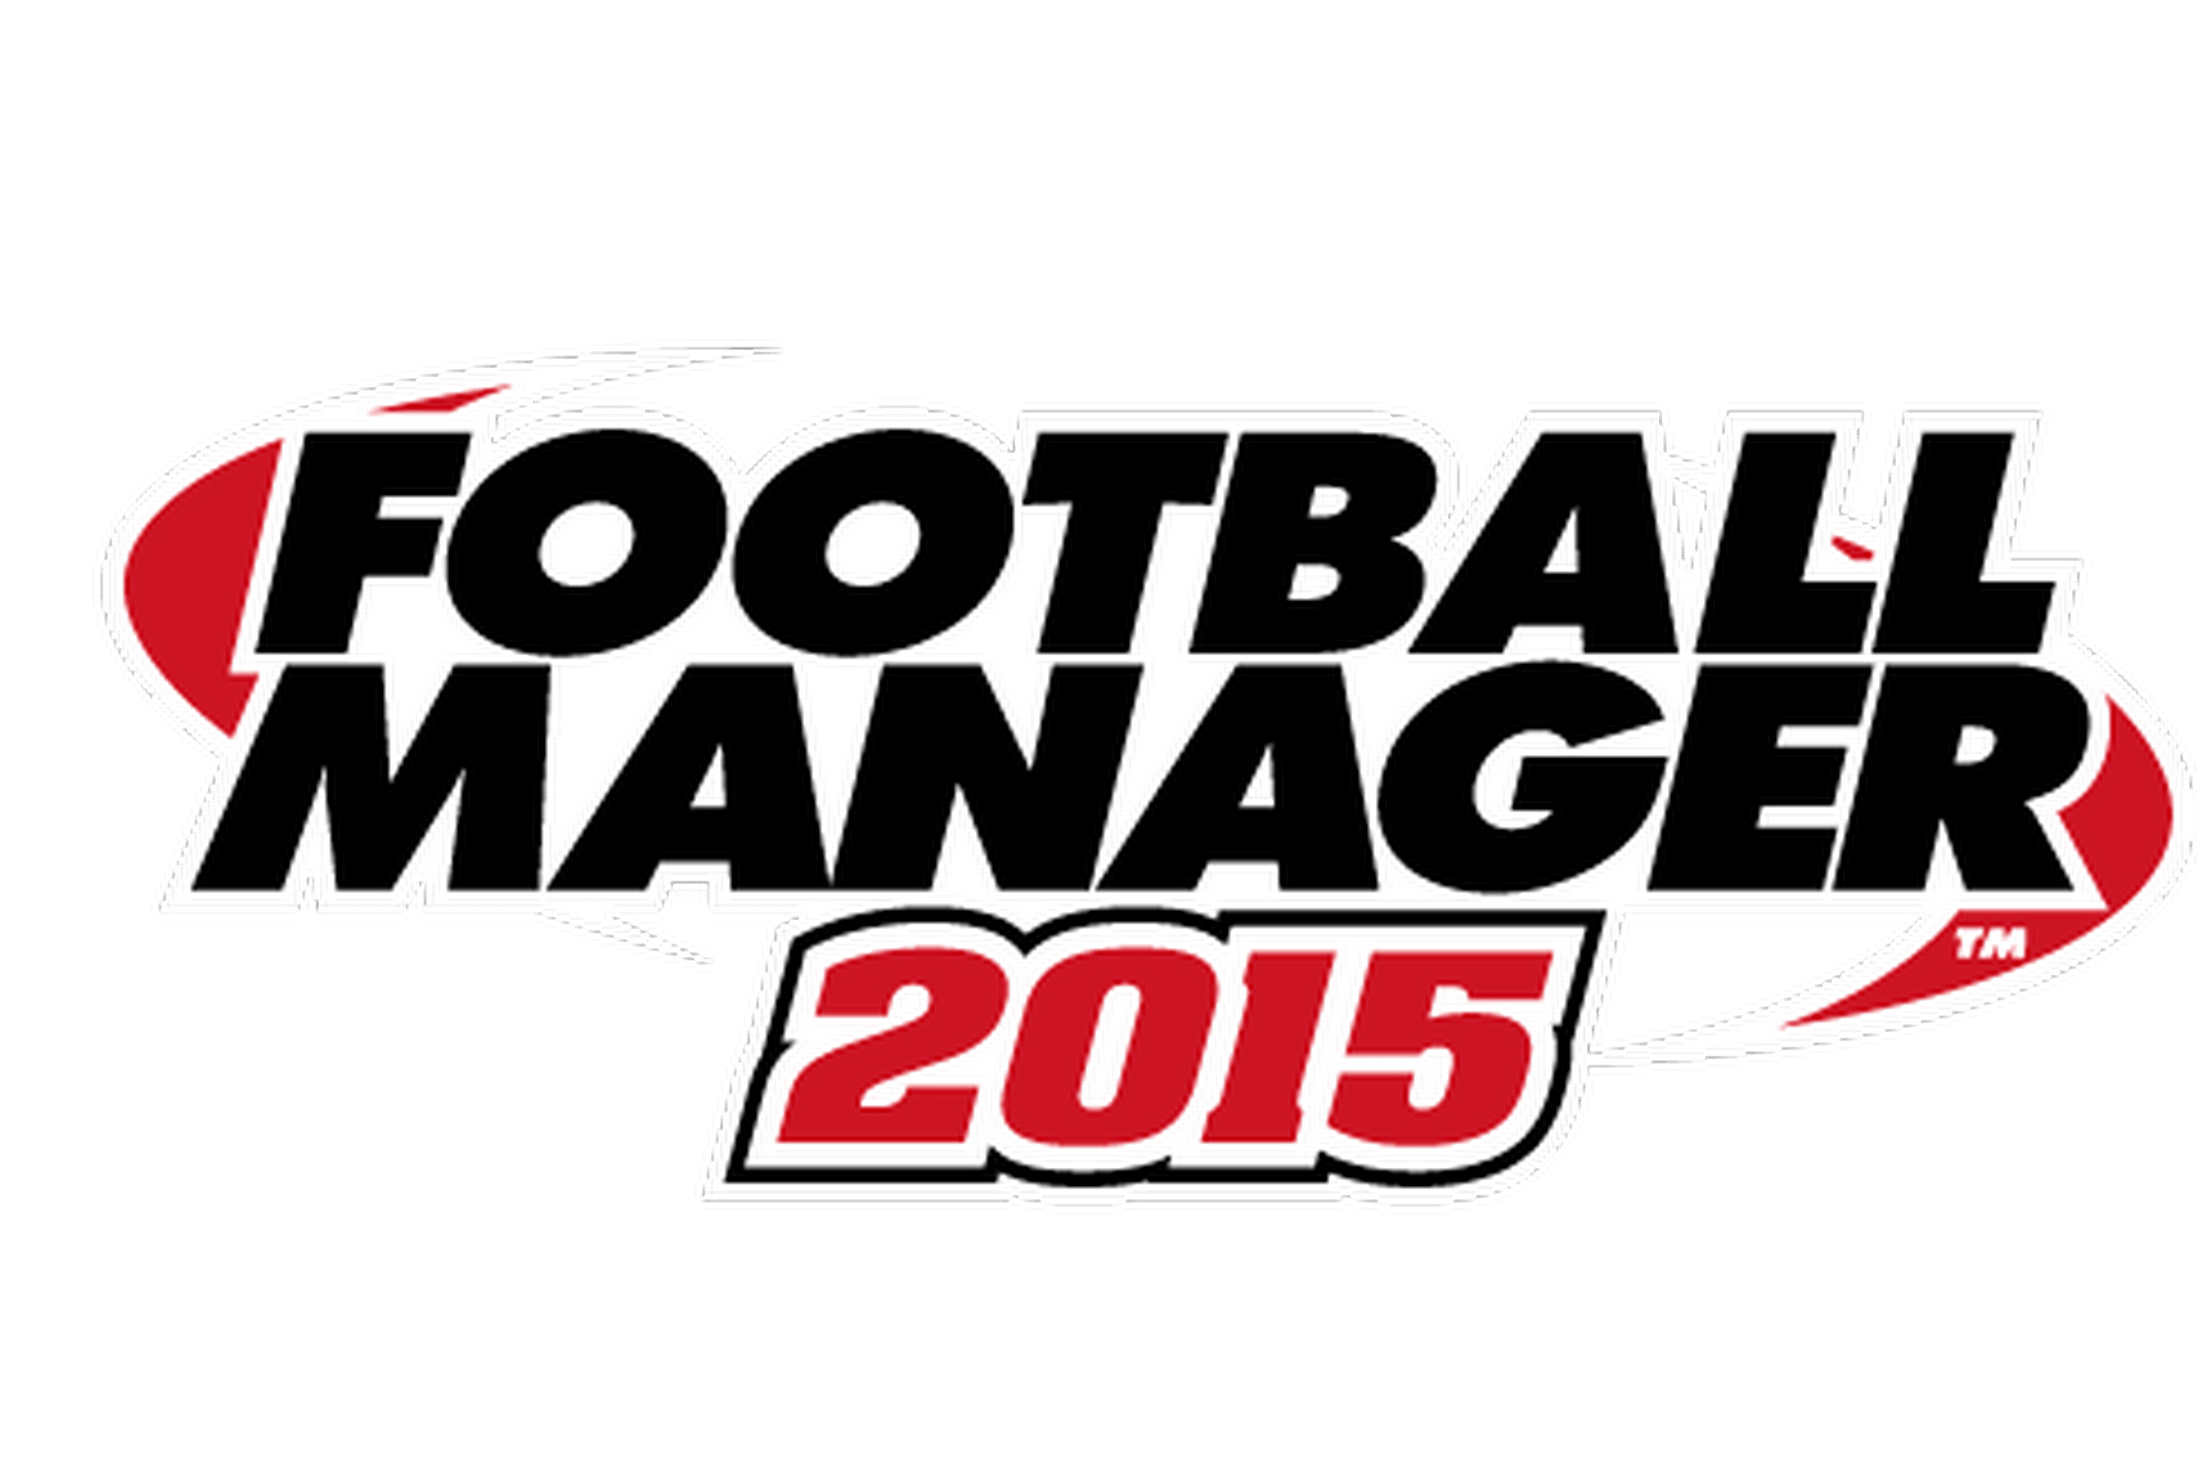 Best Coaches in Football Manager 2015